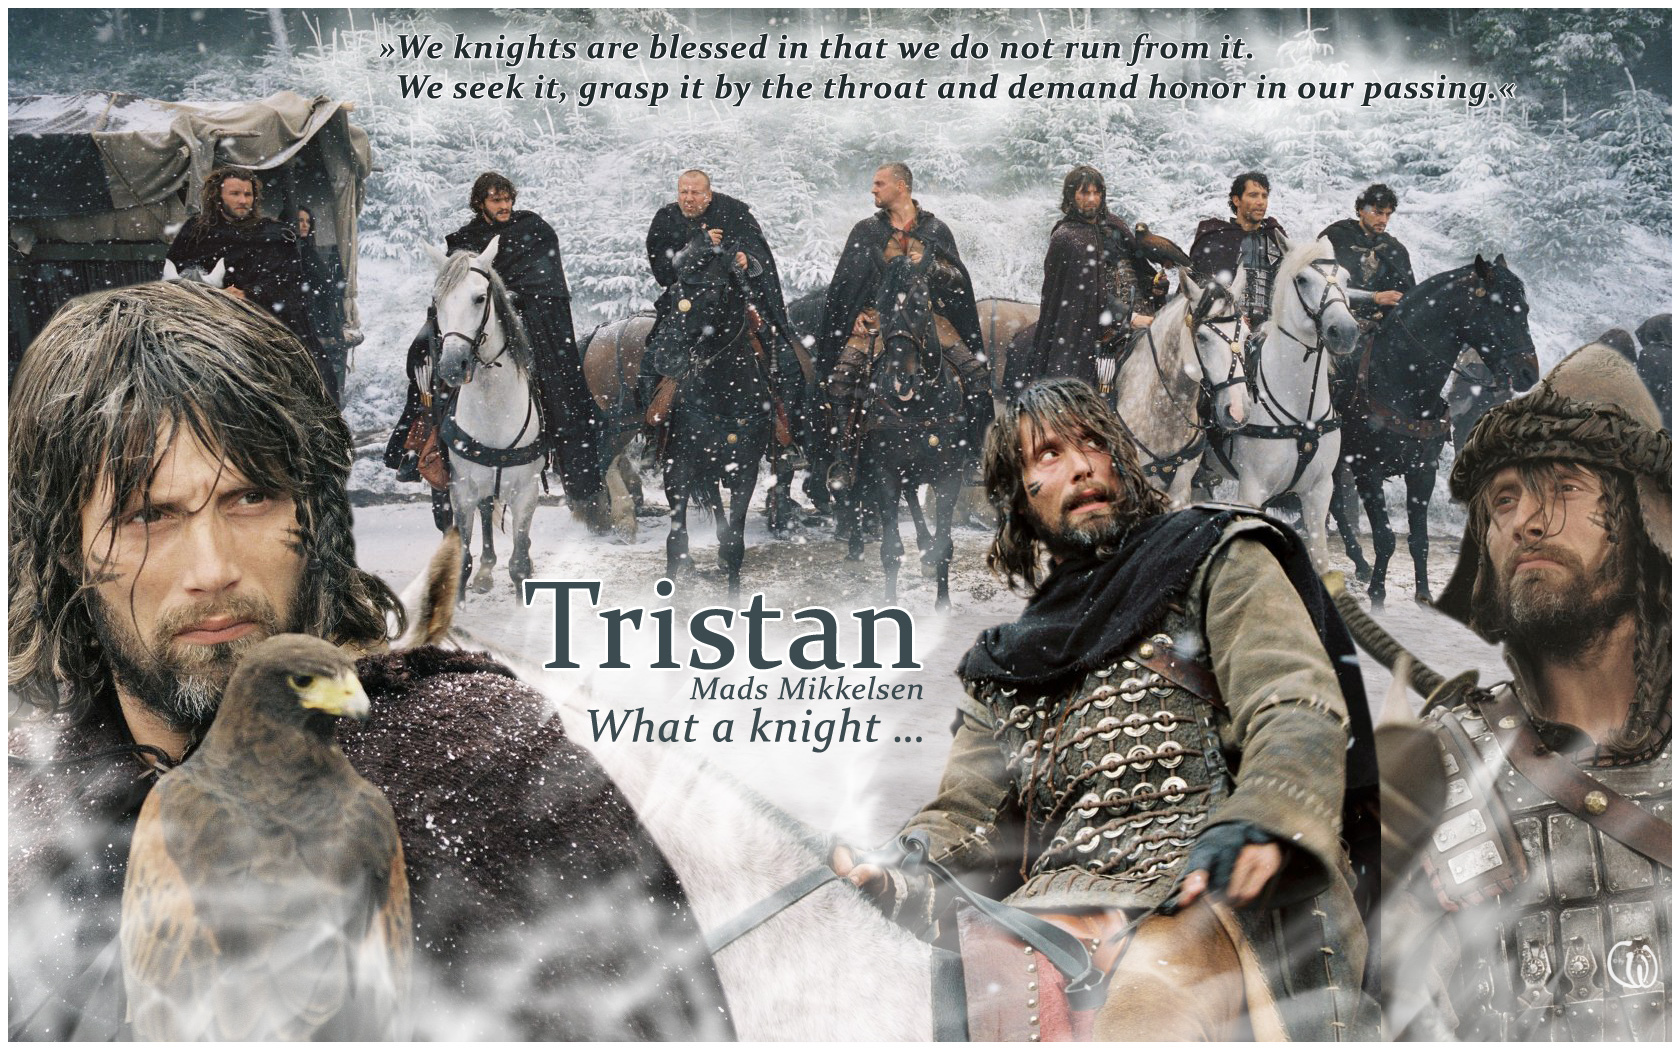 Mads Mikkelsen as Tristan in King Arthur